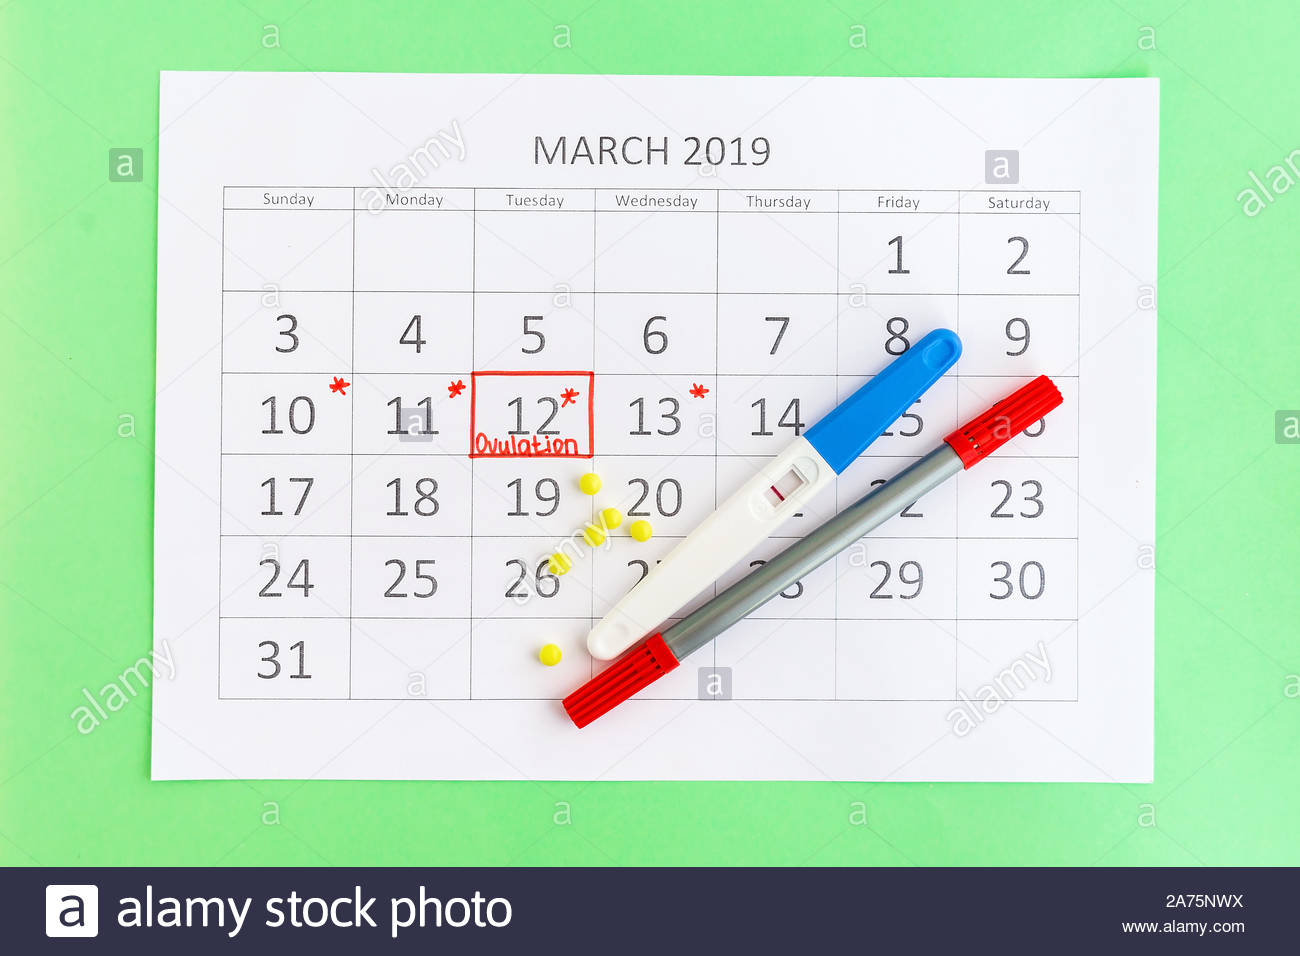 Negative Pregnancy Test With Circling Date In Calendar With Regard To When To Take Pregnancy Test Calendar